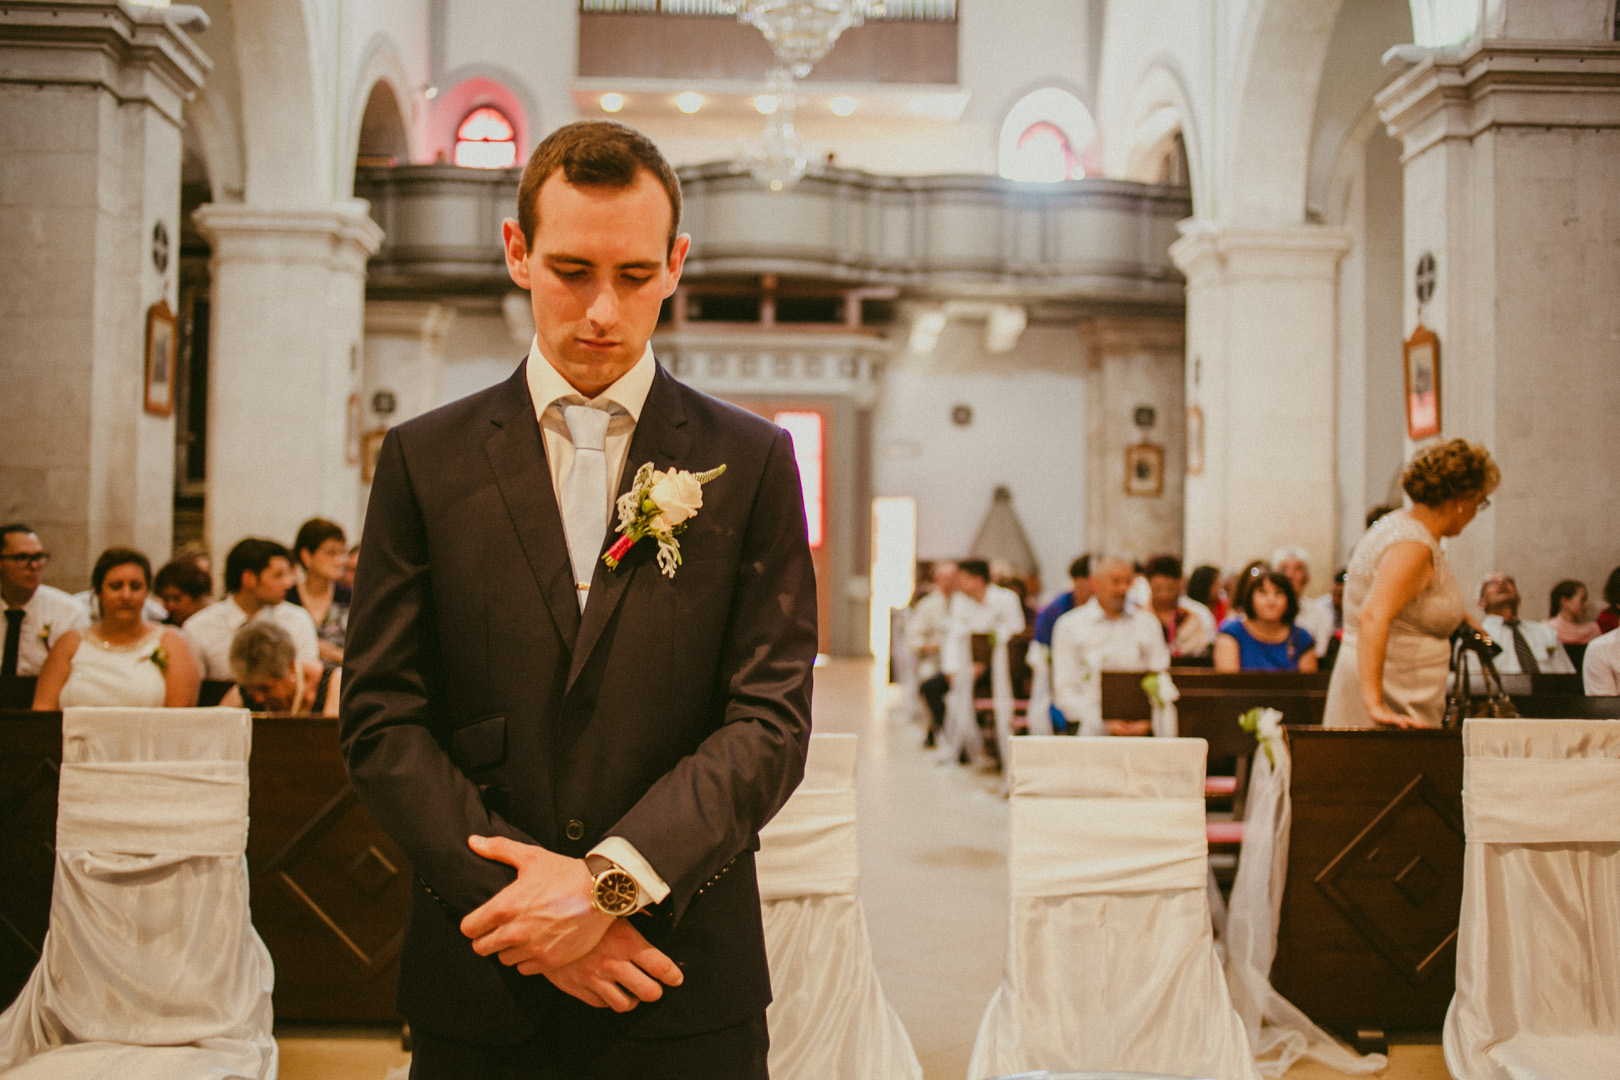 Groom nervously waits for his bride to arrive